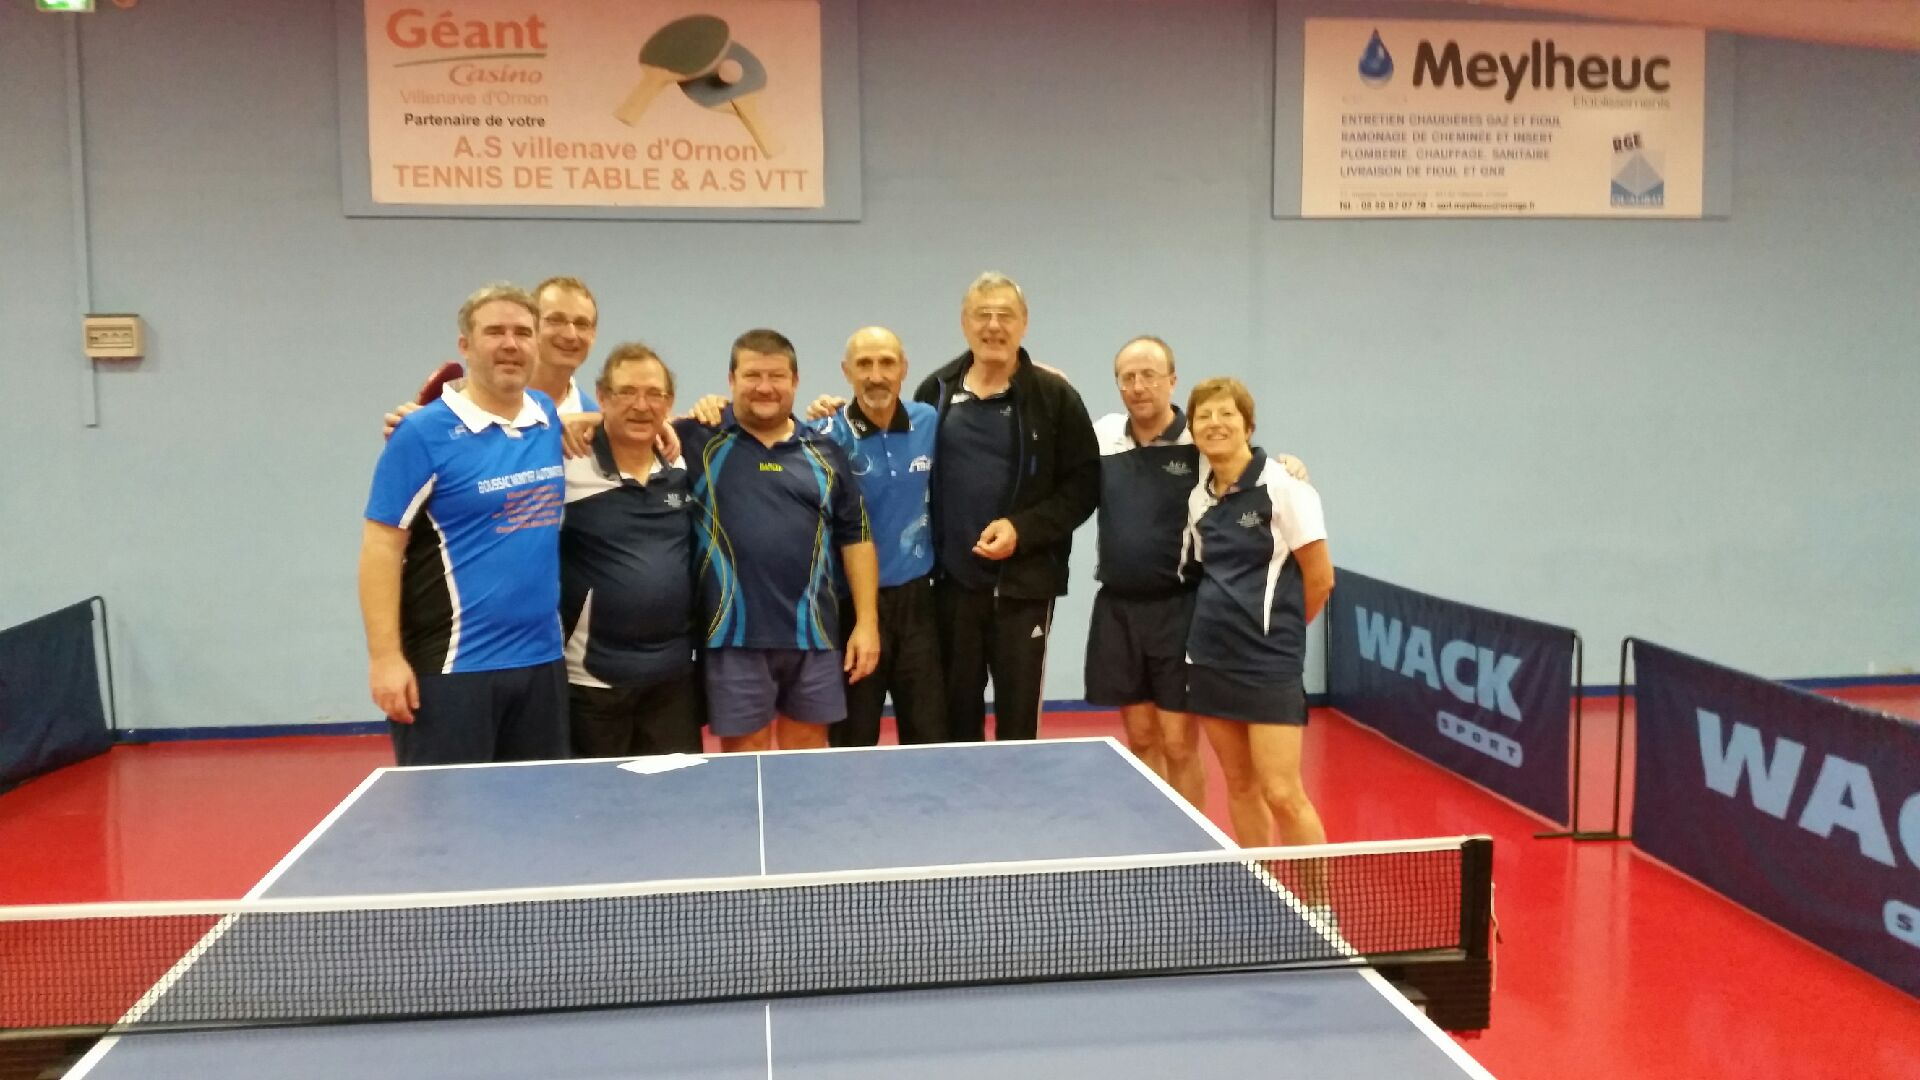 Wack Sport Tennis De Table 14 Novembre 2017 Association Sportive Villenave Tennis De Table